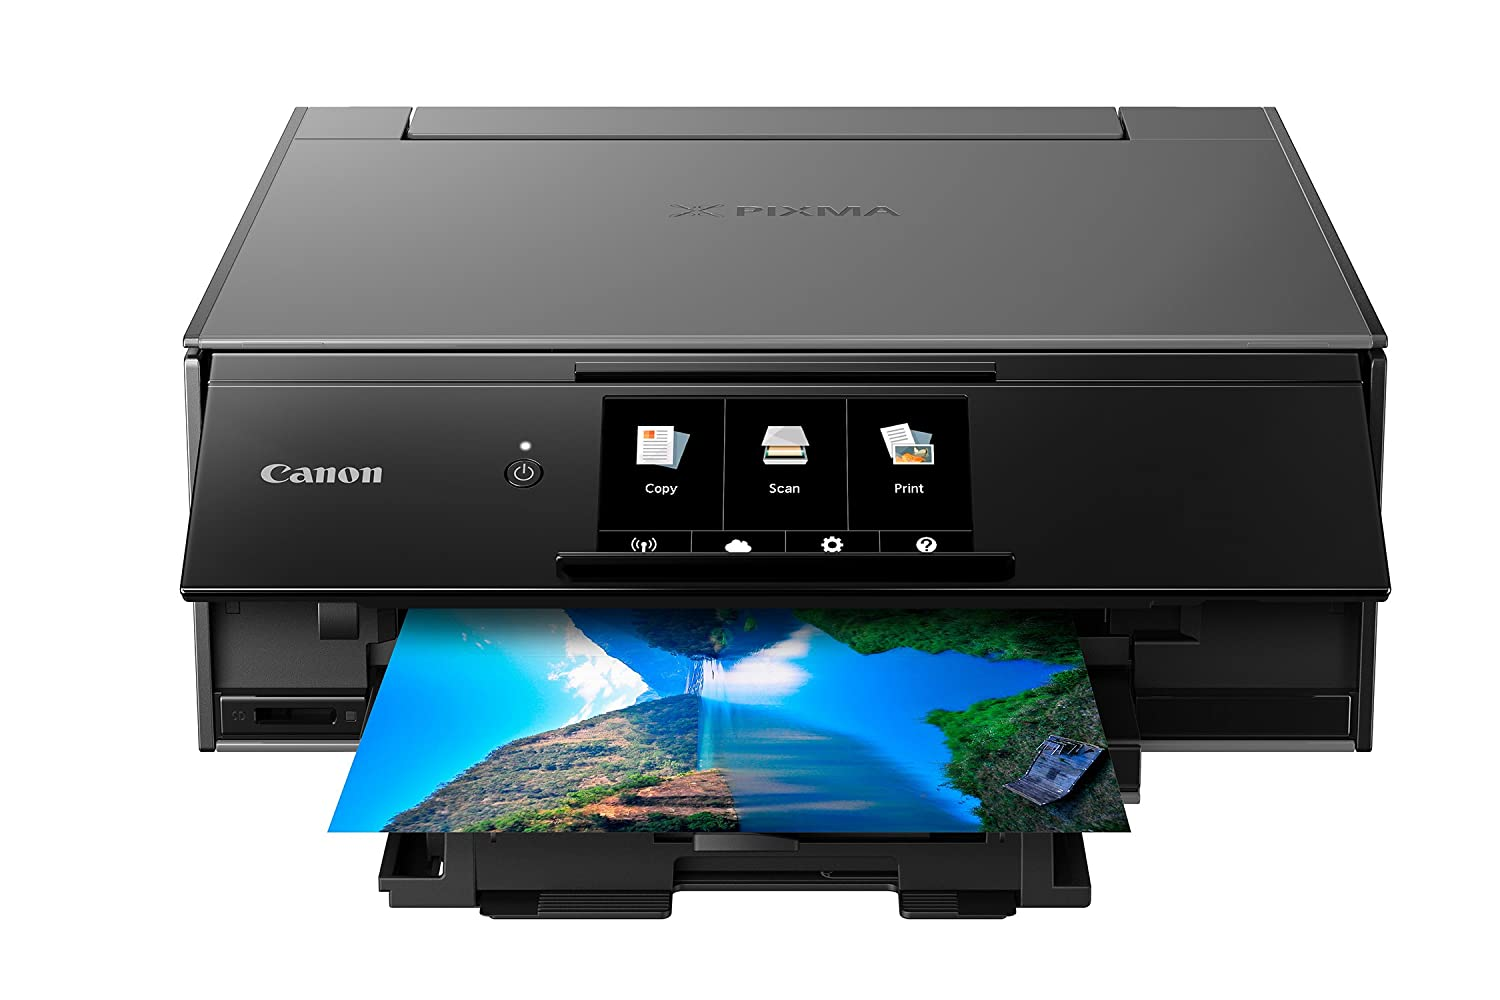 Canon TS9120 Wireless All-In-One Printer Black Friday Deal 2020